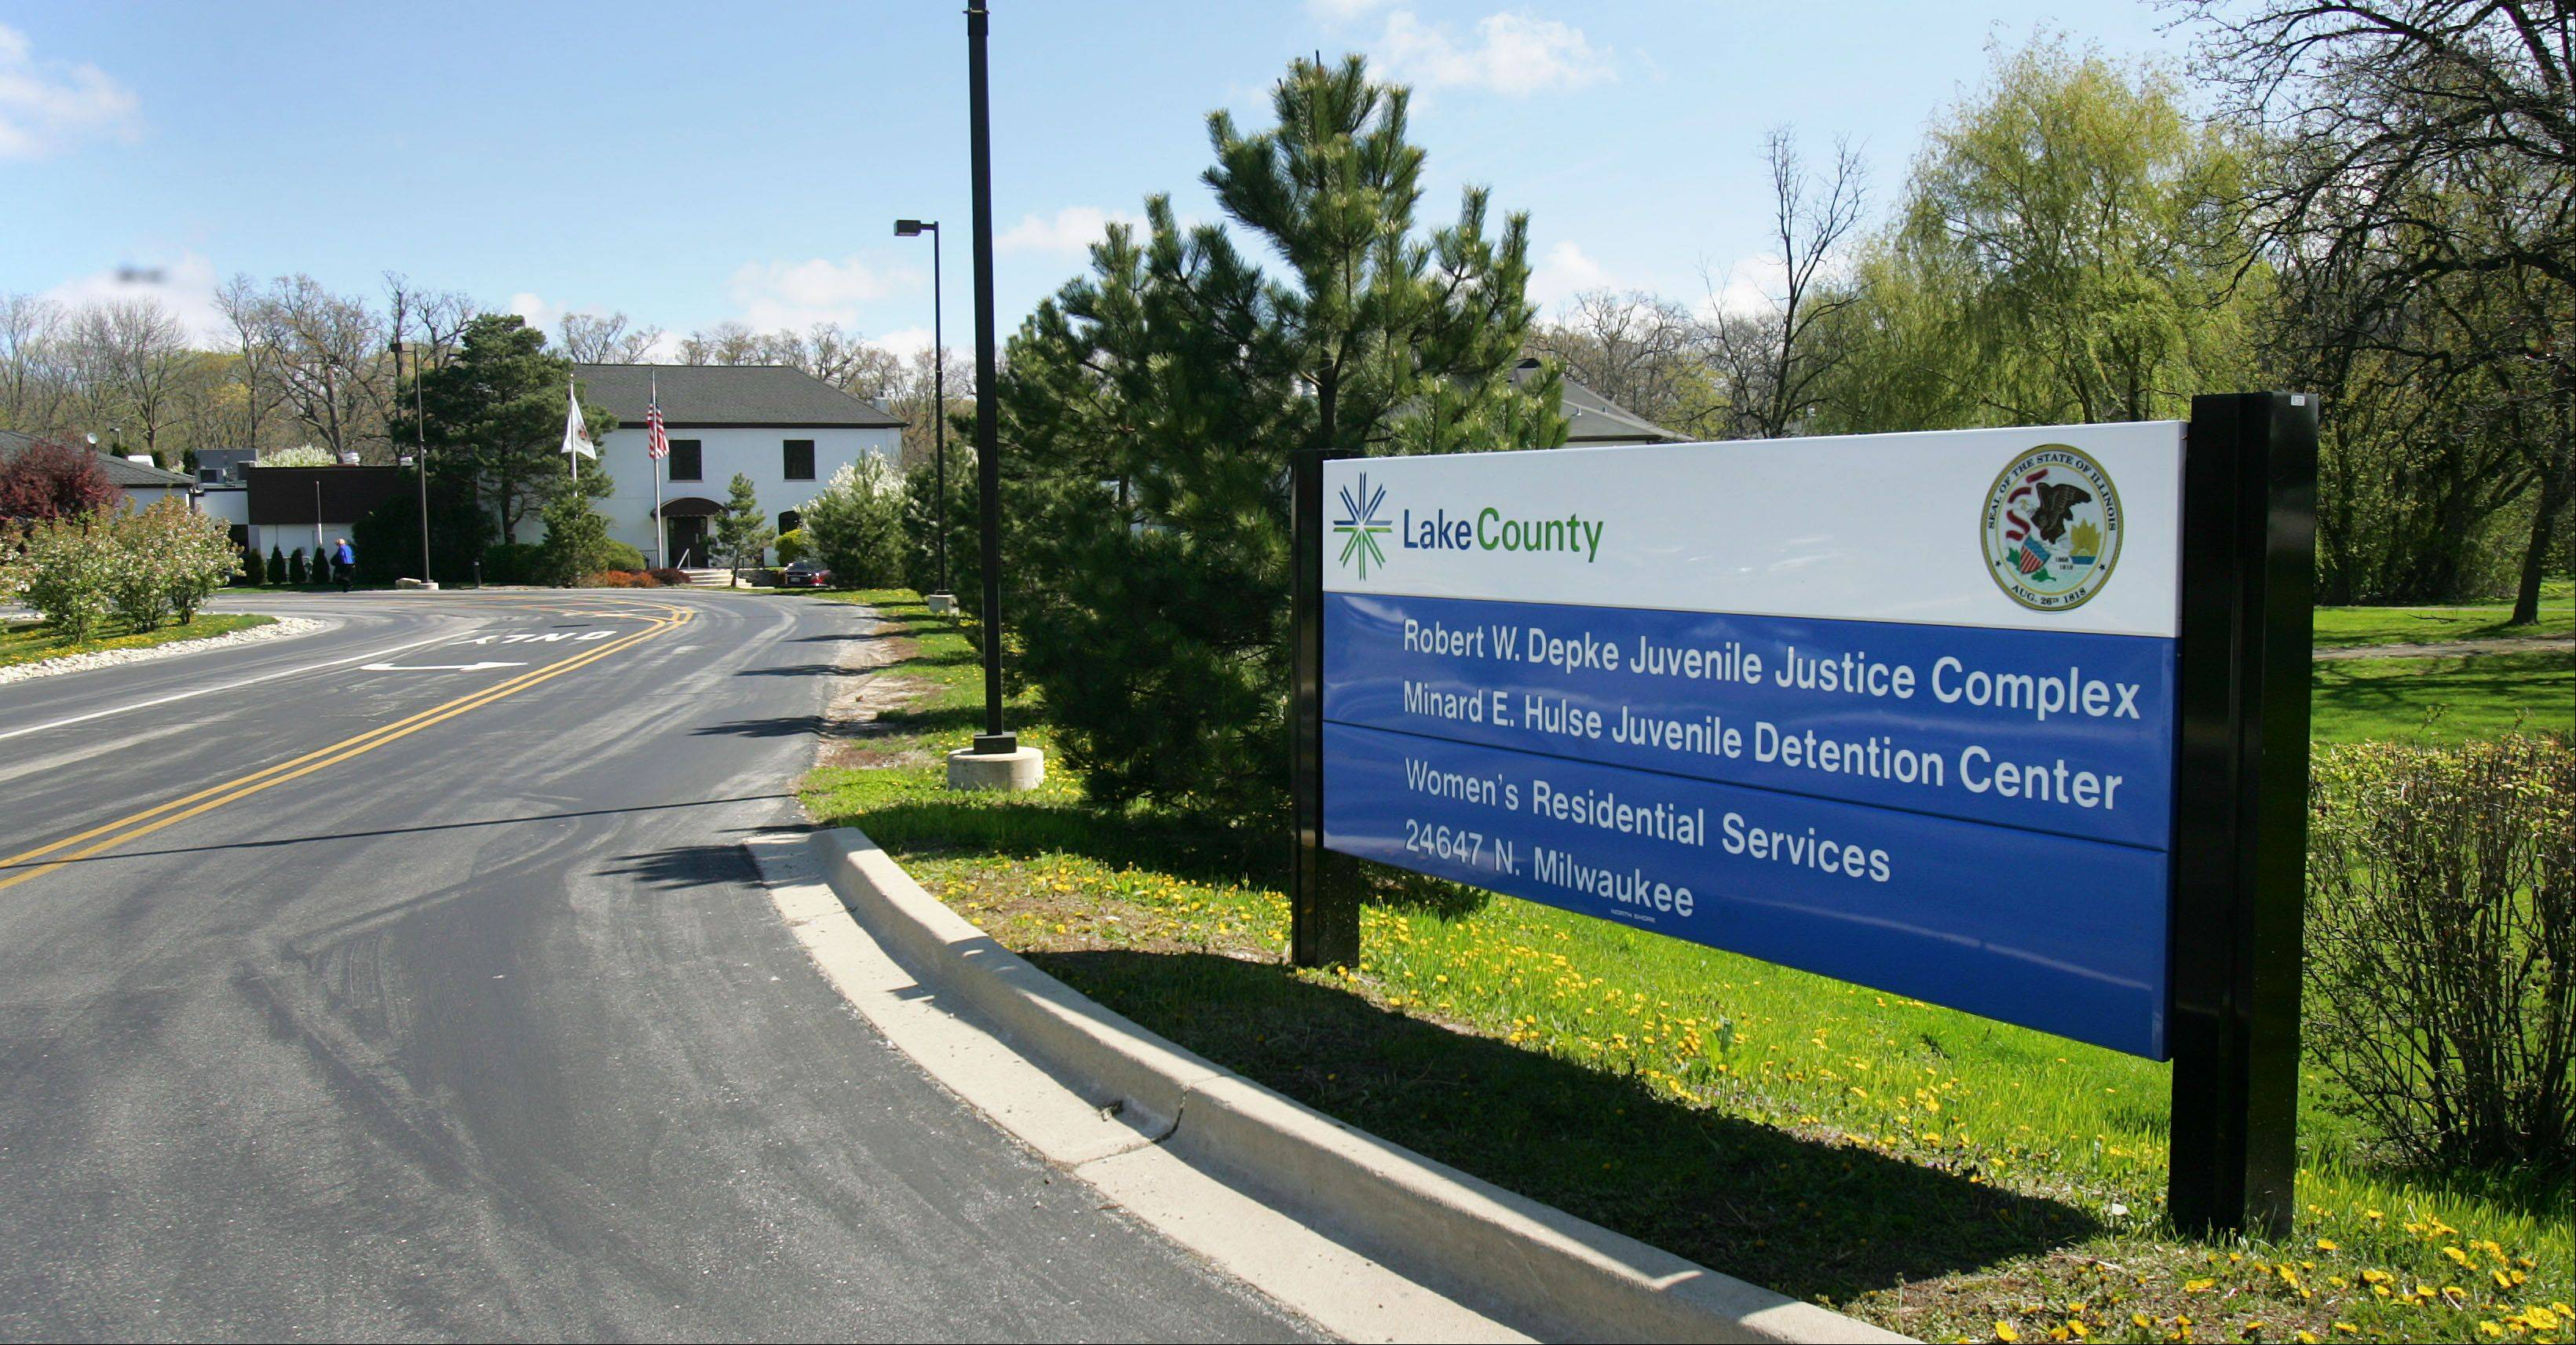 The year-old Offender Job Readiness Program is based at the Depke Juvenile Justice Center near Vernon Hills.